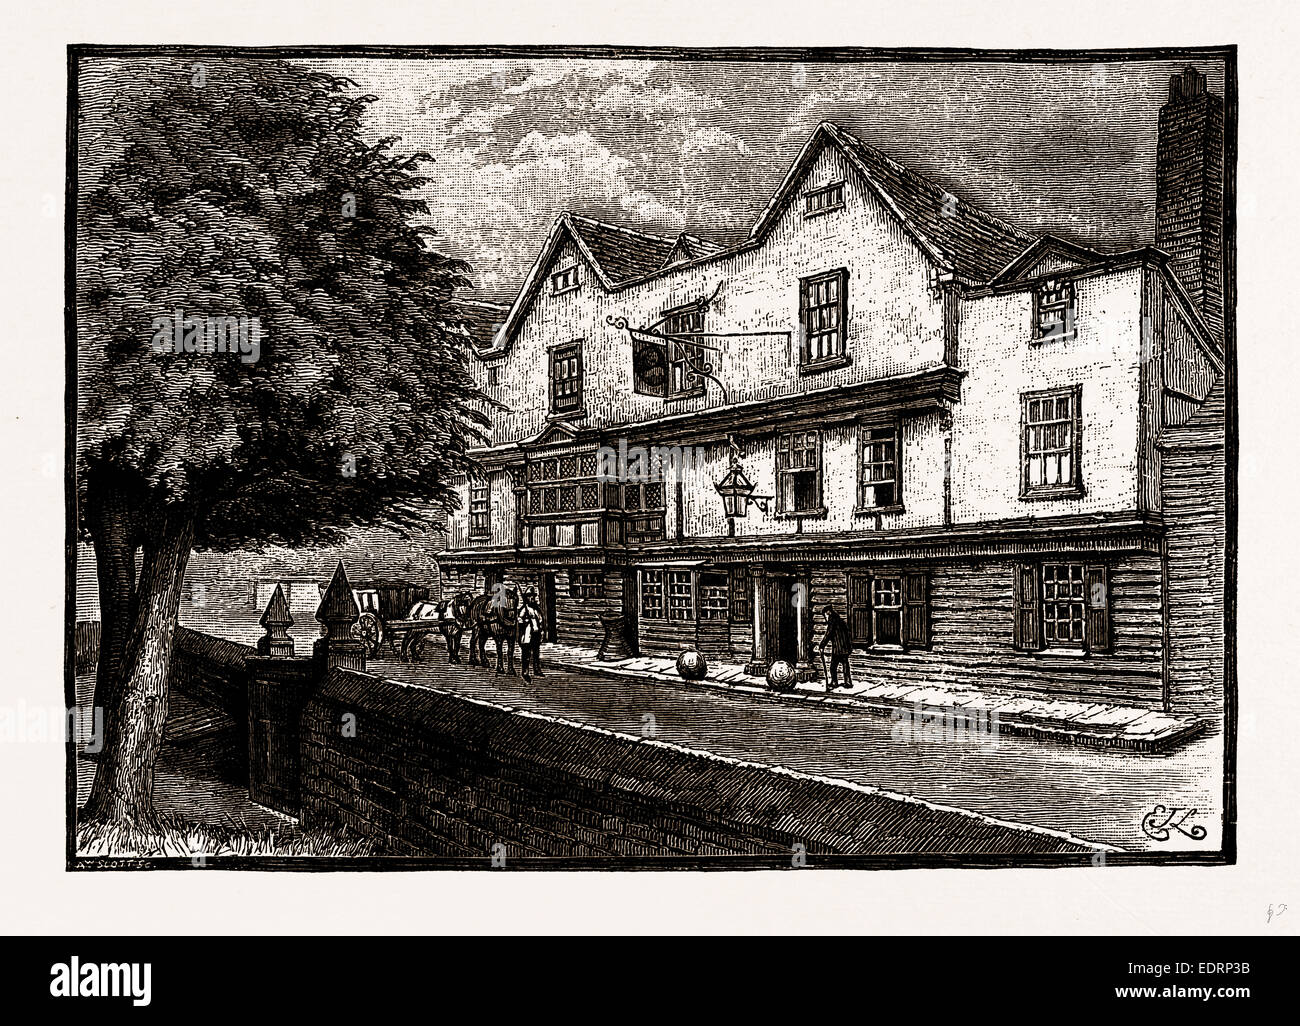 THE ' KING'S HEAD,' CHIGWELL, UK, engraving 1881 - 1884 - Stock Image